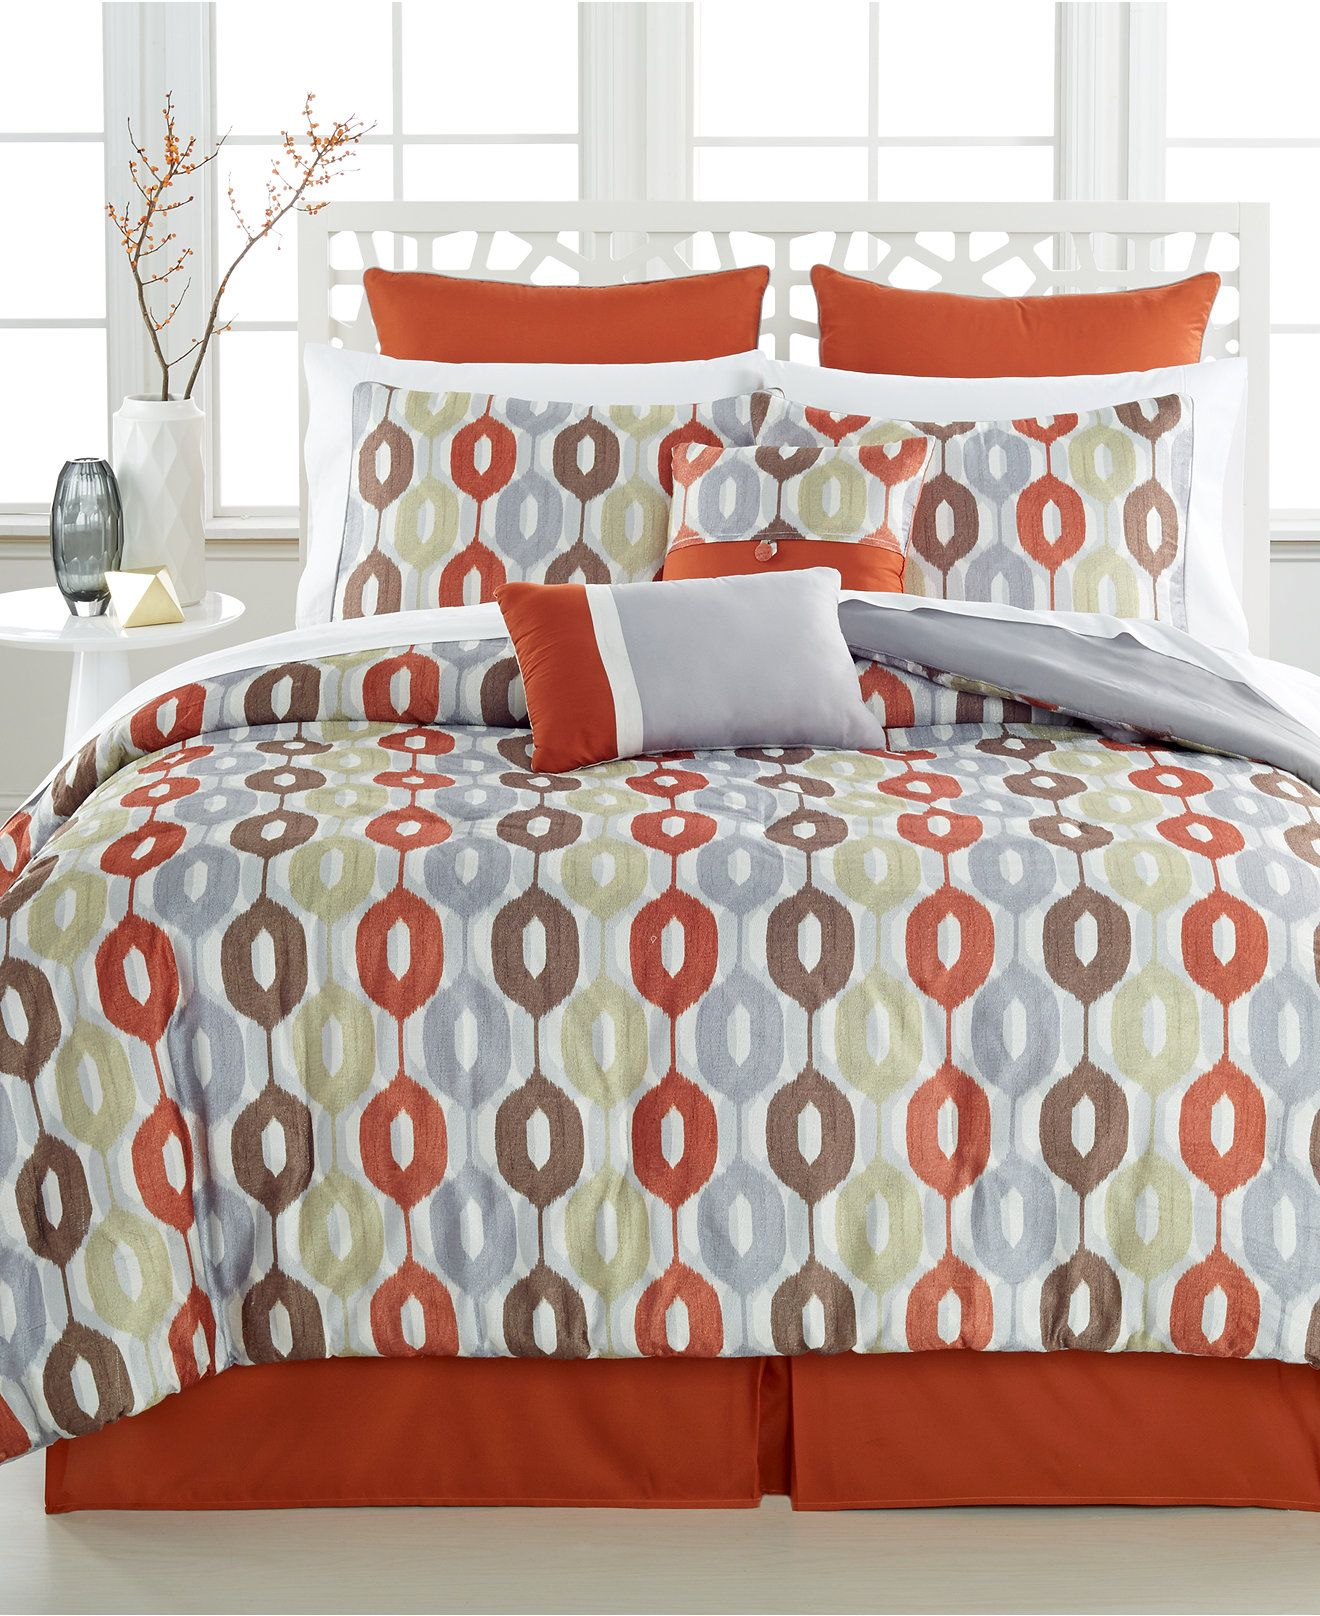 Manor Court 8-Pc.Comforter Sets - Bed in a Bag - Bed ...